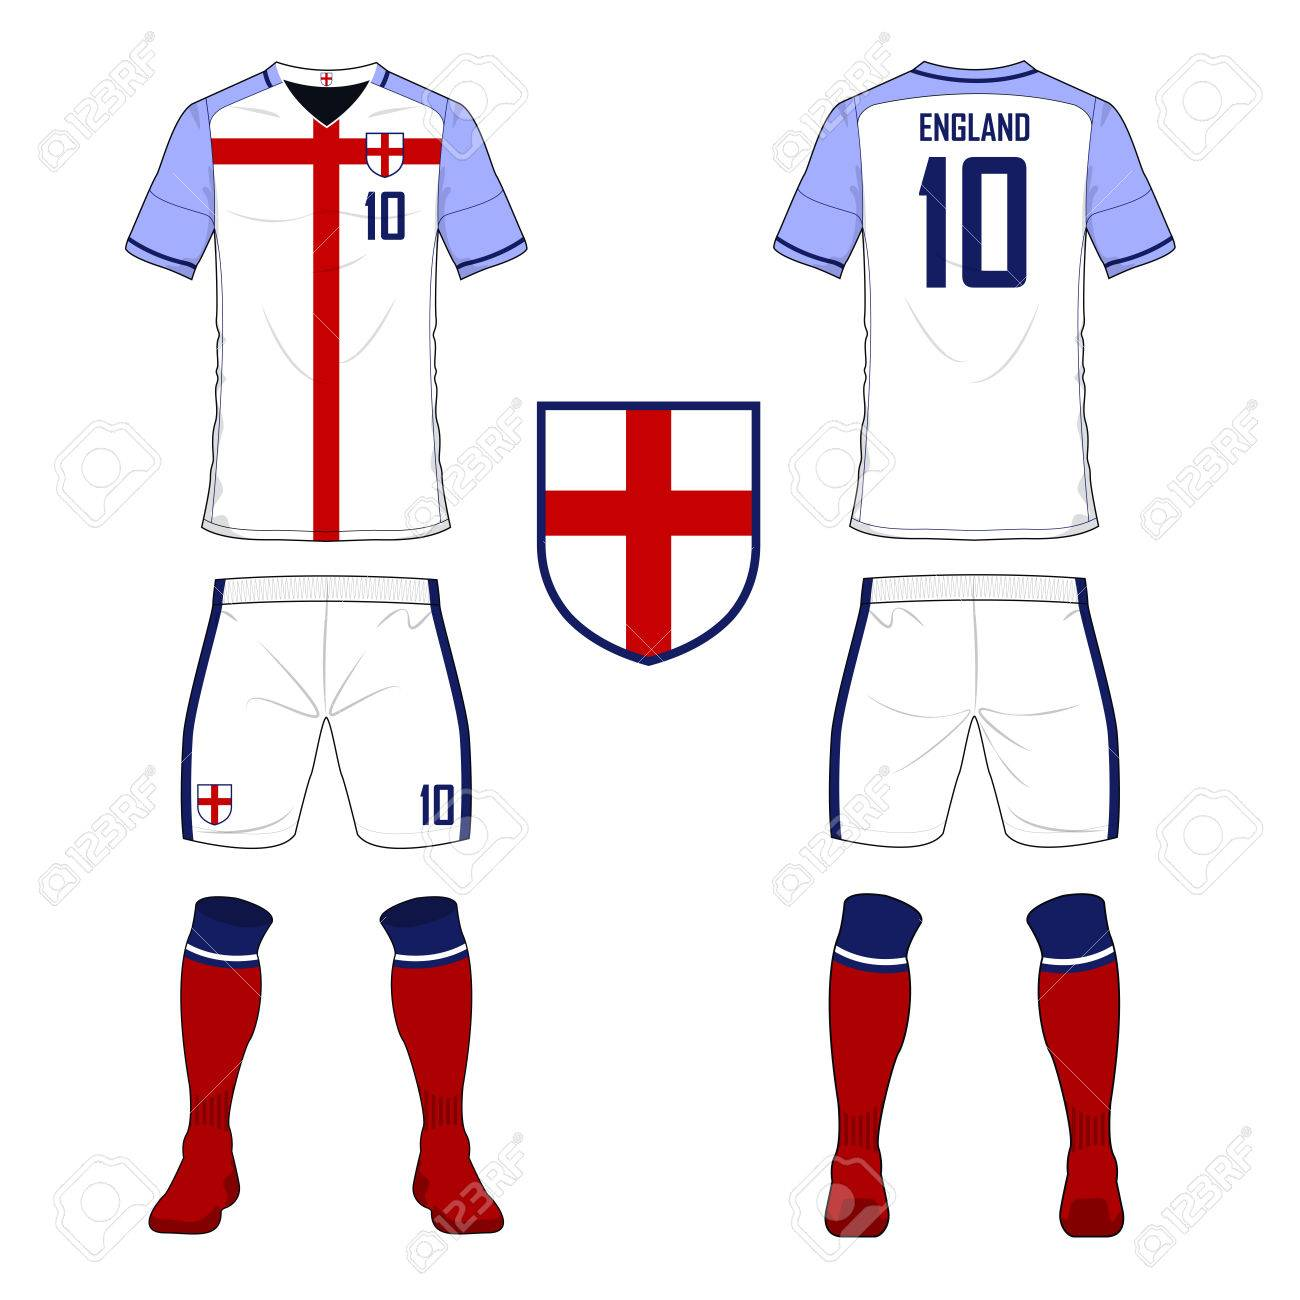 online store de5d3 ccf61 Set of soccer jersey or football kit template for England national..